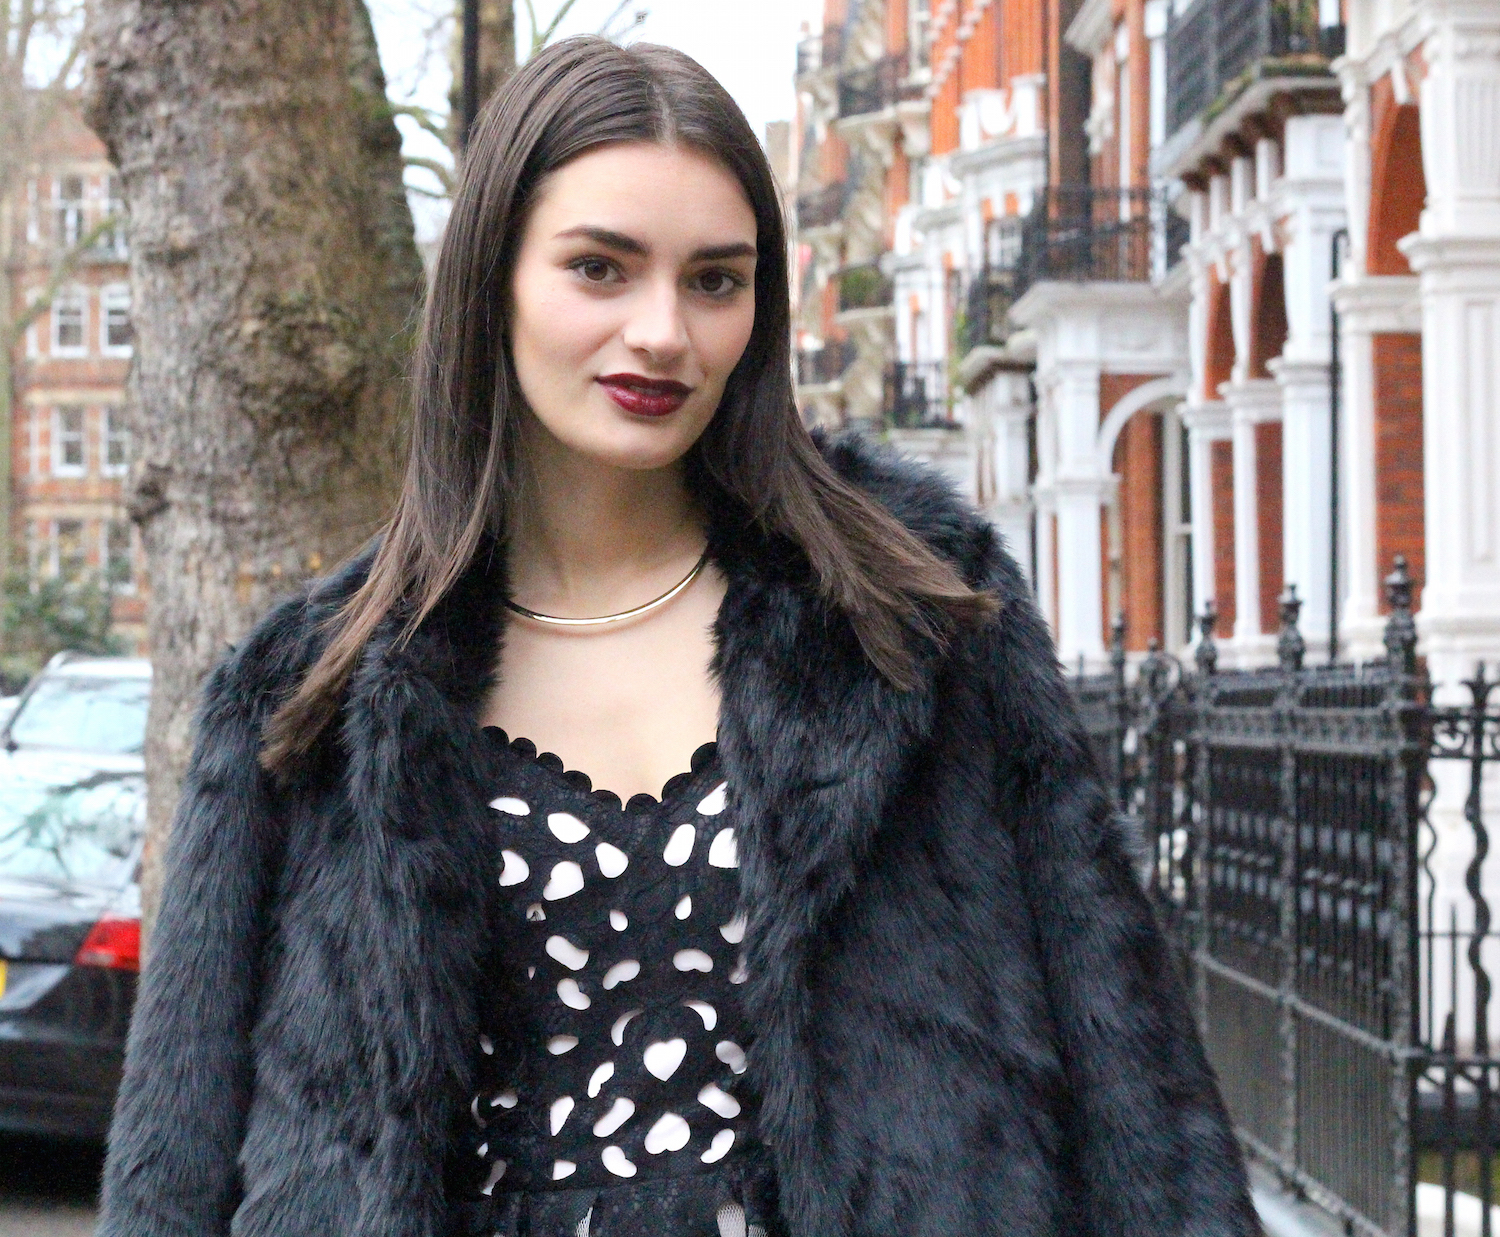 peexo fashion blogger wearing faux fur coat